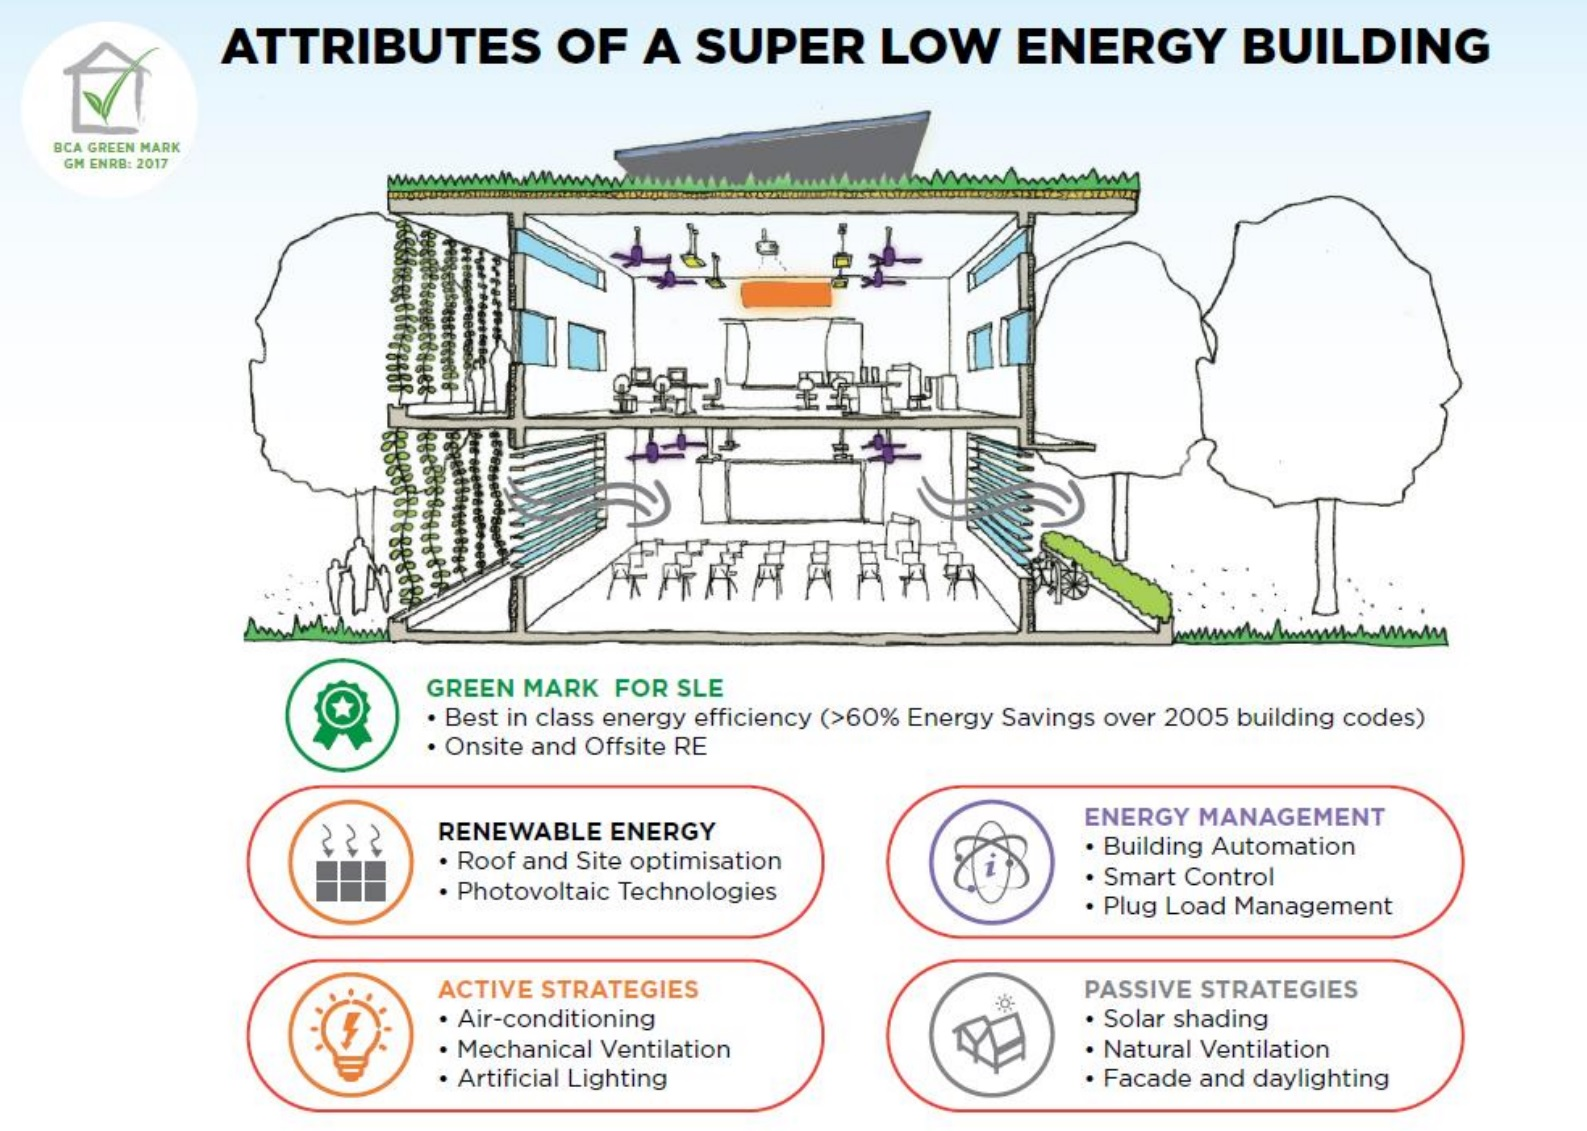 BCA Drives the Next Generation of Green Buildings - The Super Low Energy Buildings